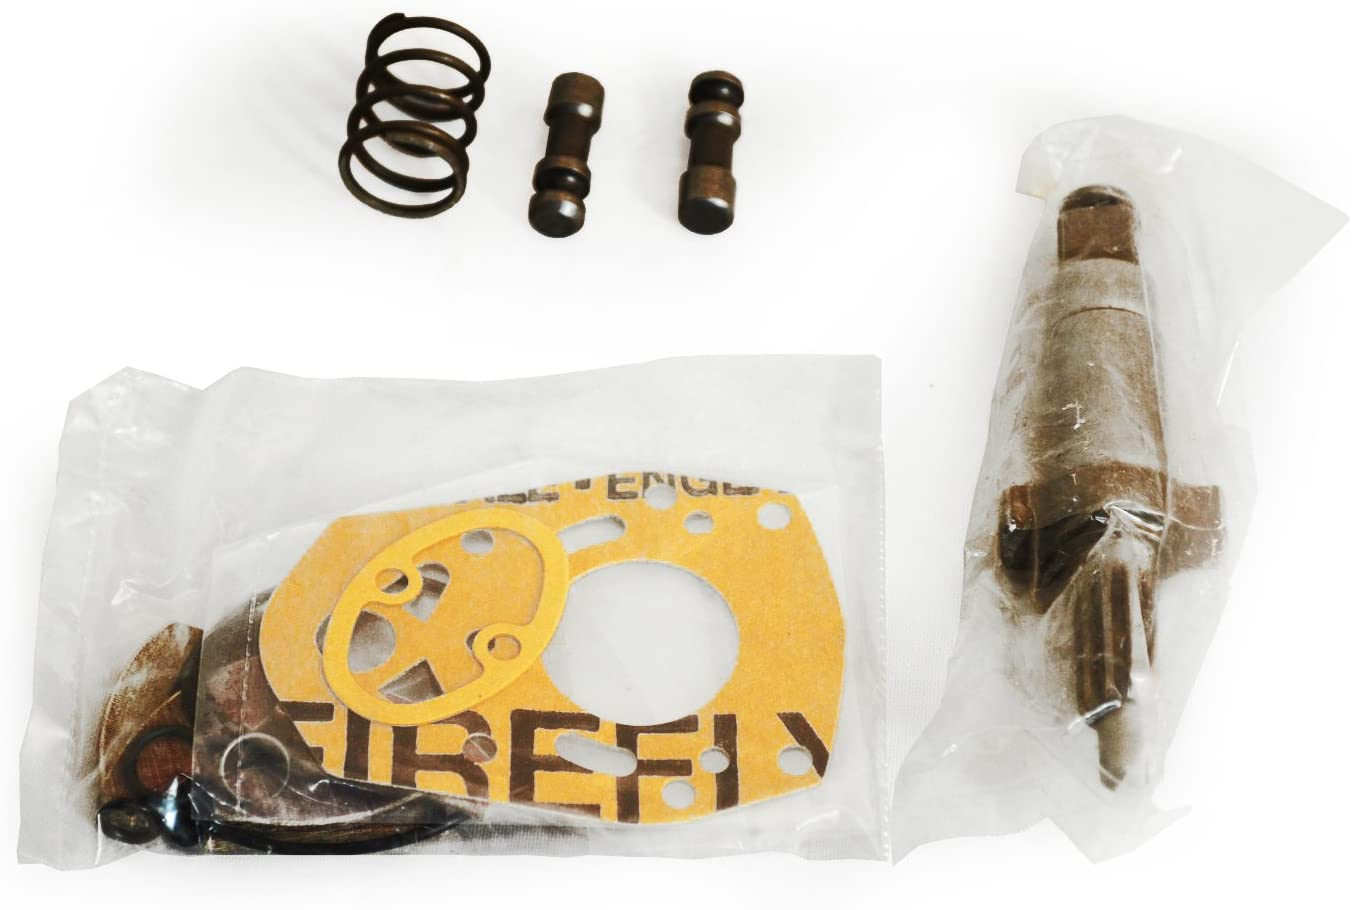 Astro service 145-RK Repair Kit Manufacturer direct delivery